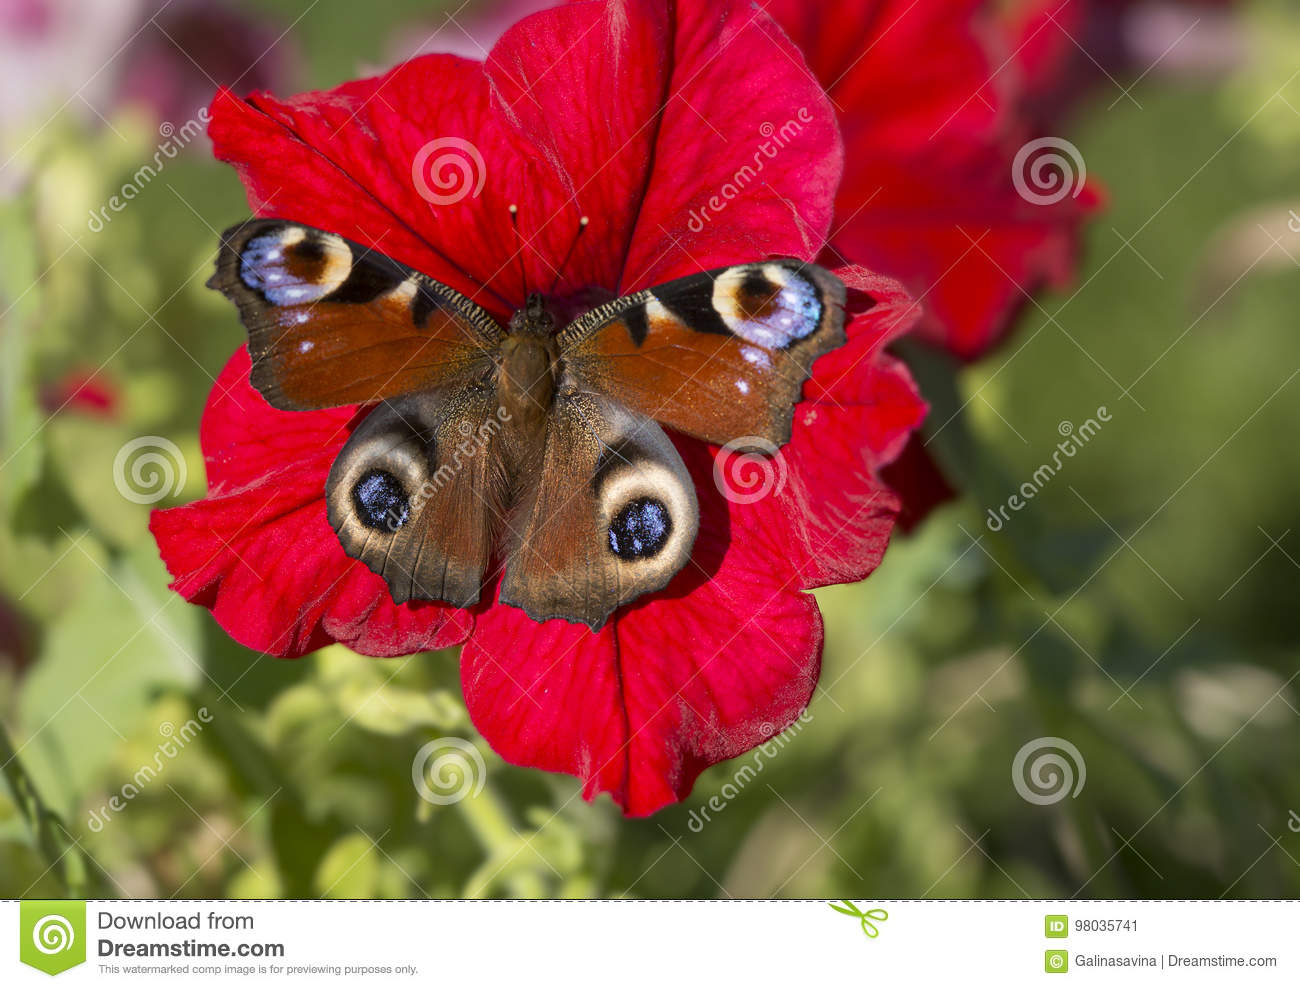 The Butterfly Of Peacock Eye On The Petunia Flower Stock